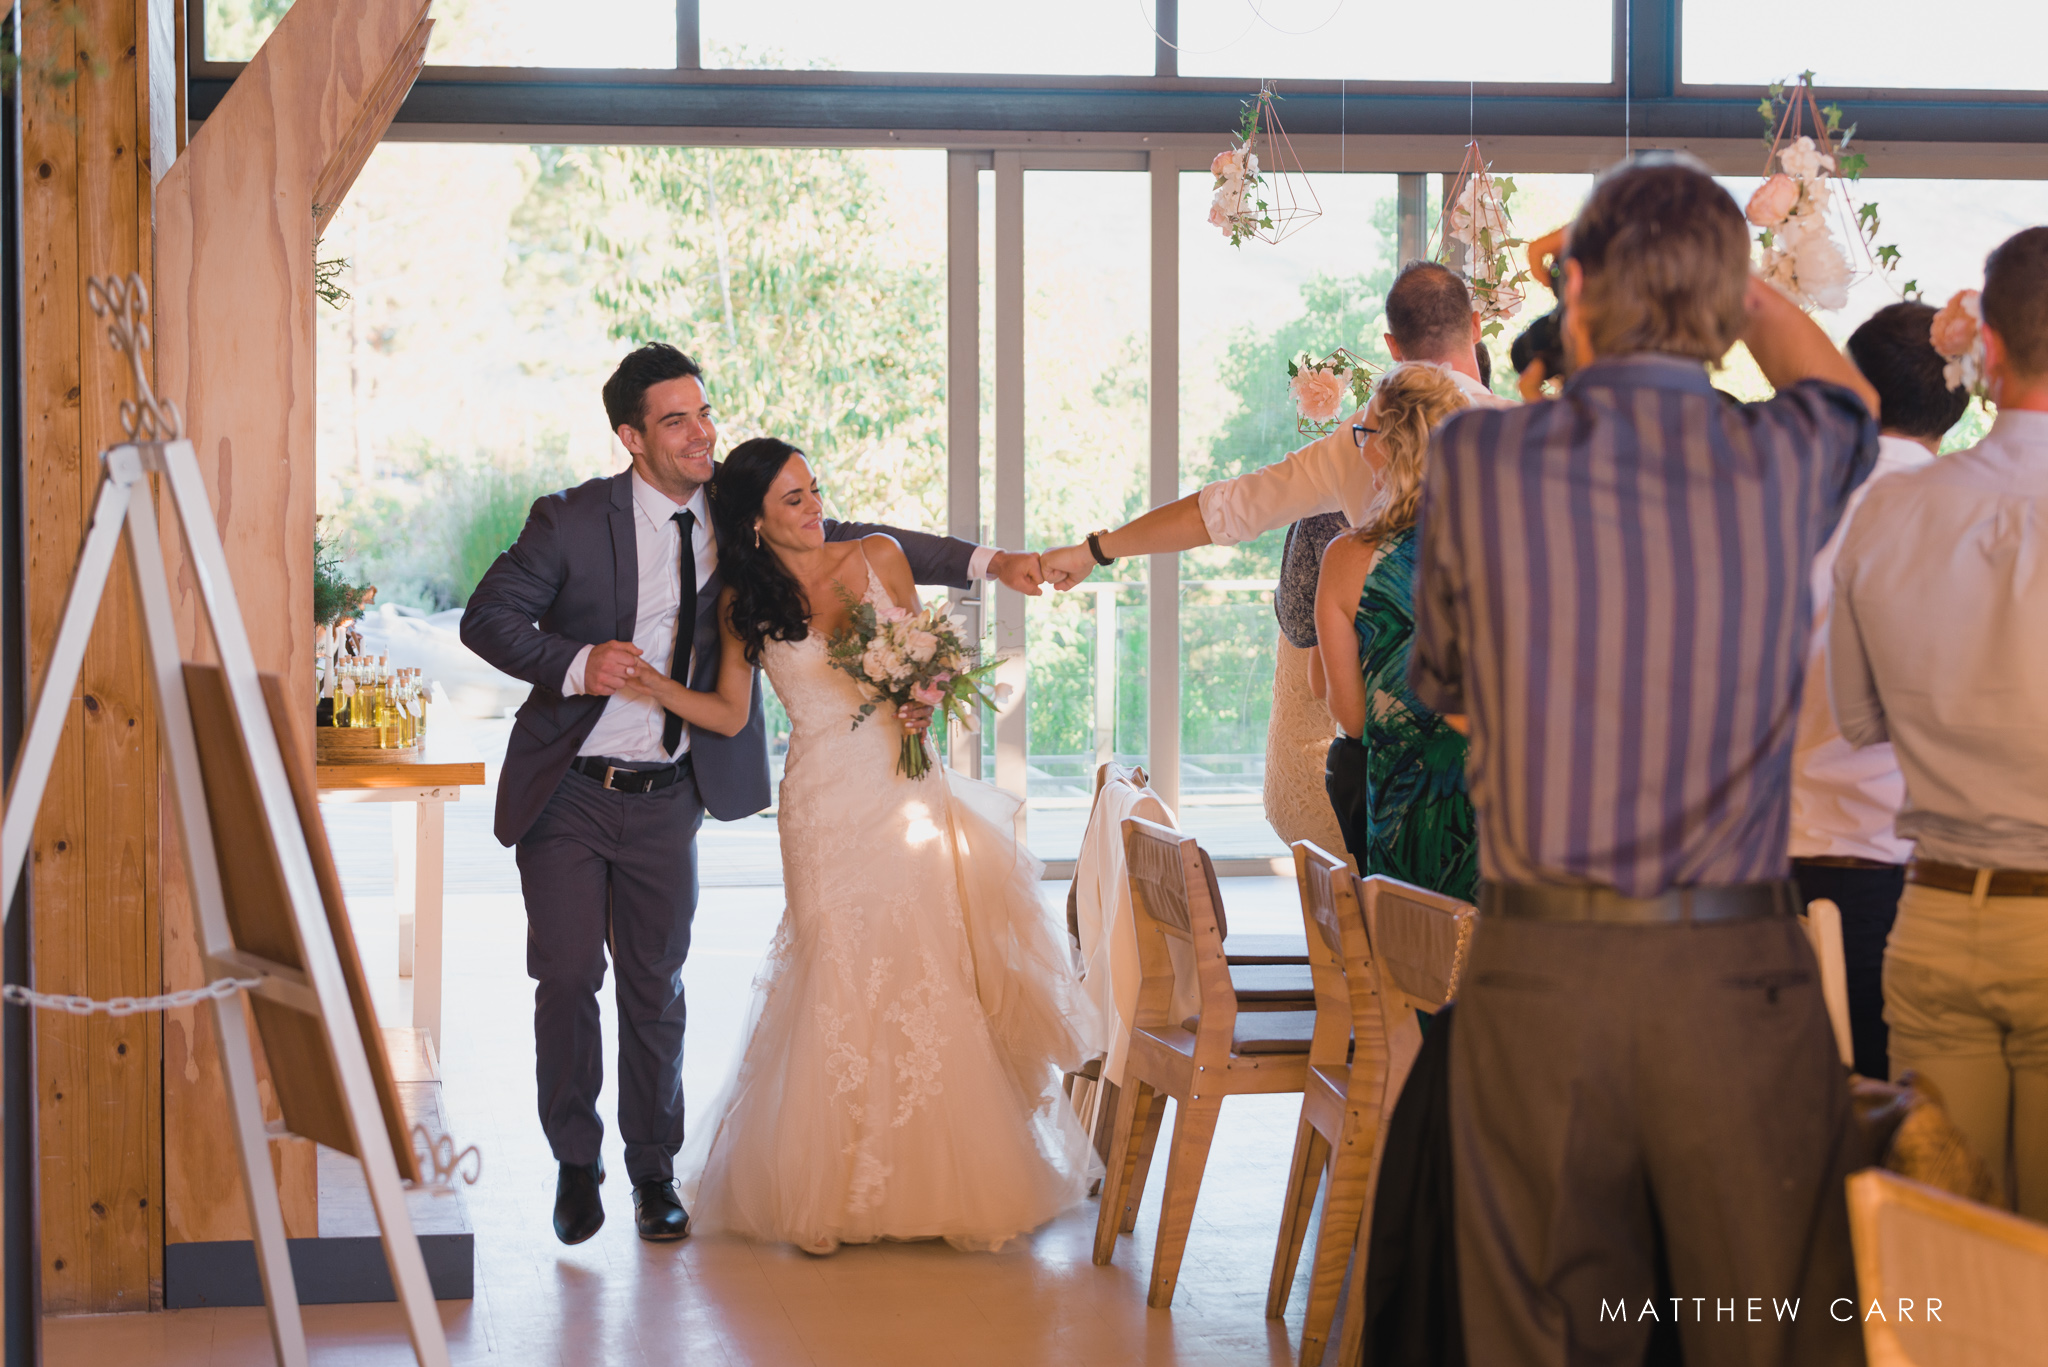 reception - low res (for viewing, social meida) (3 of 147).JPG